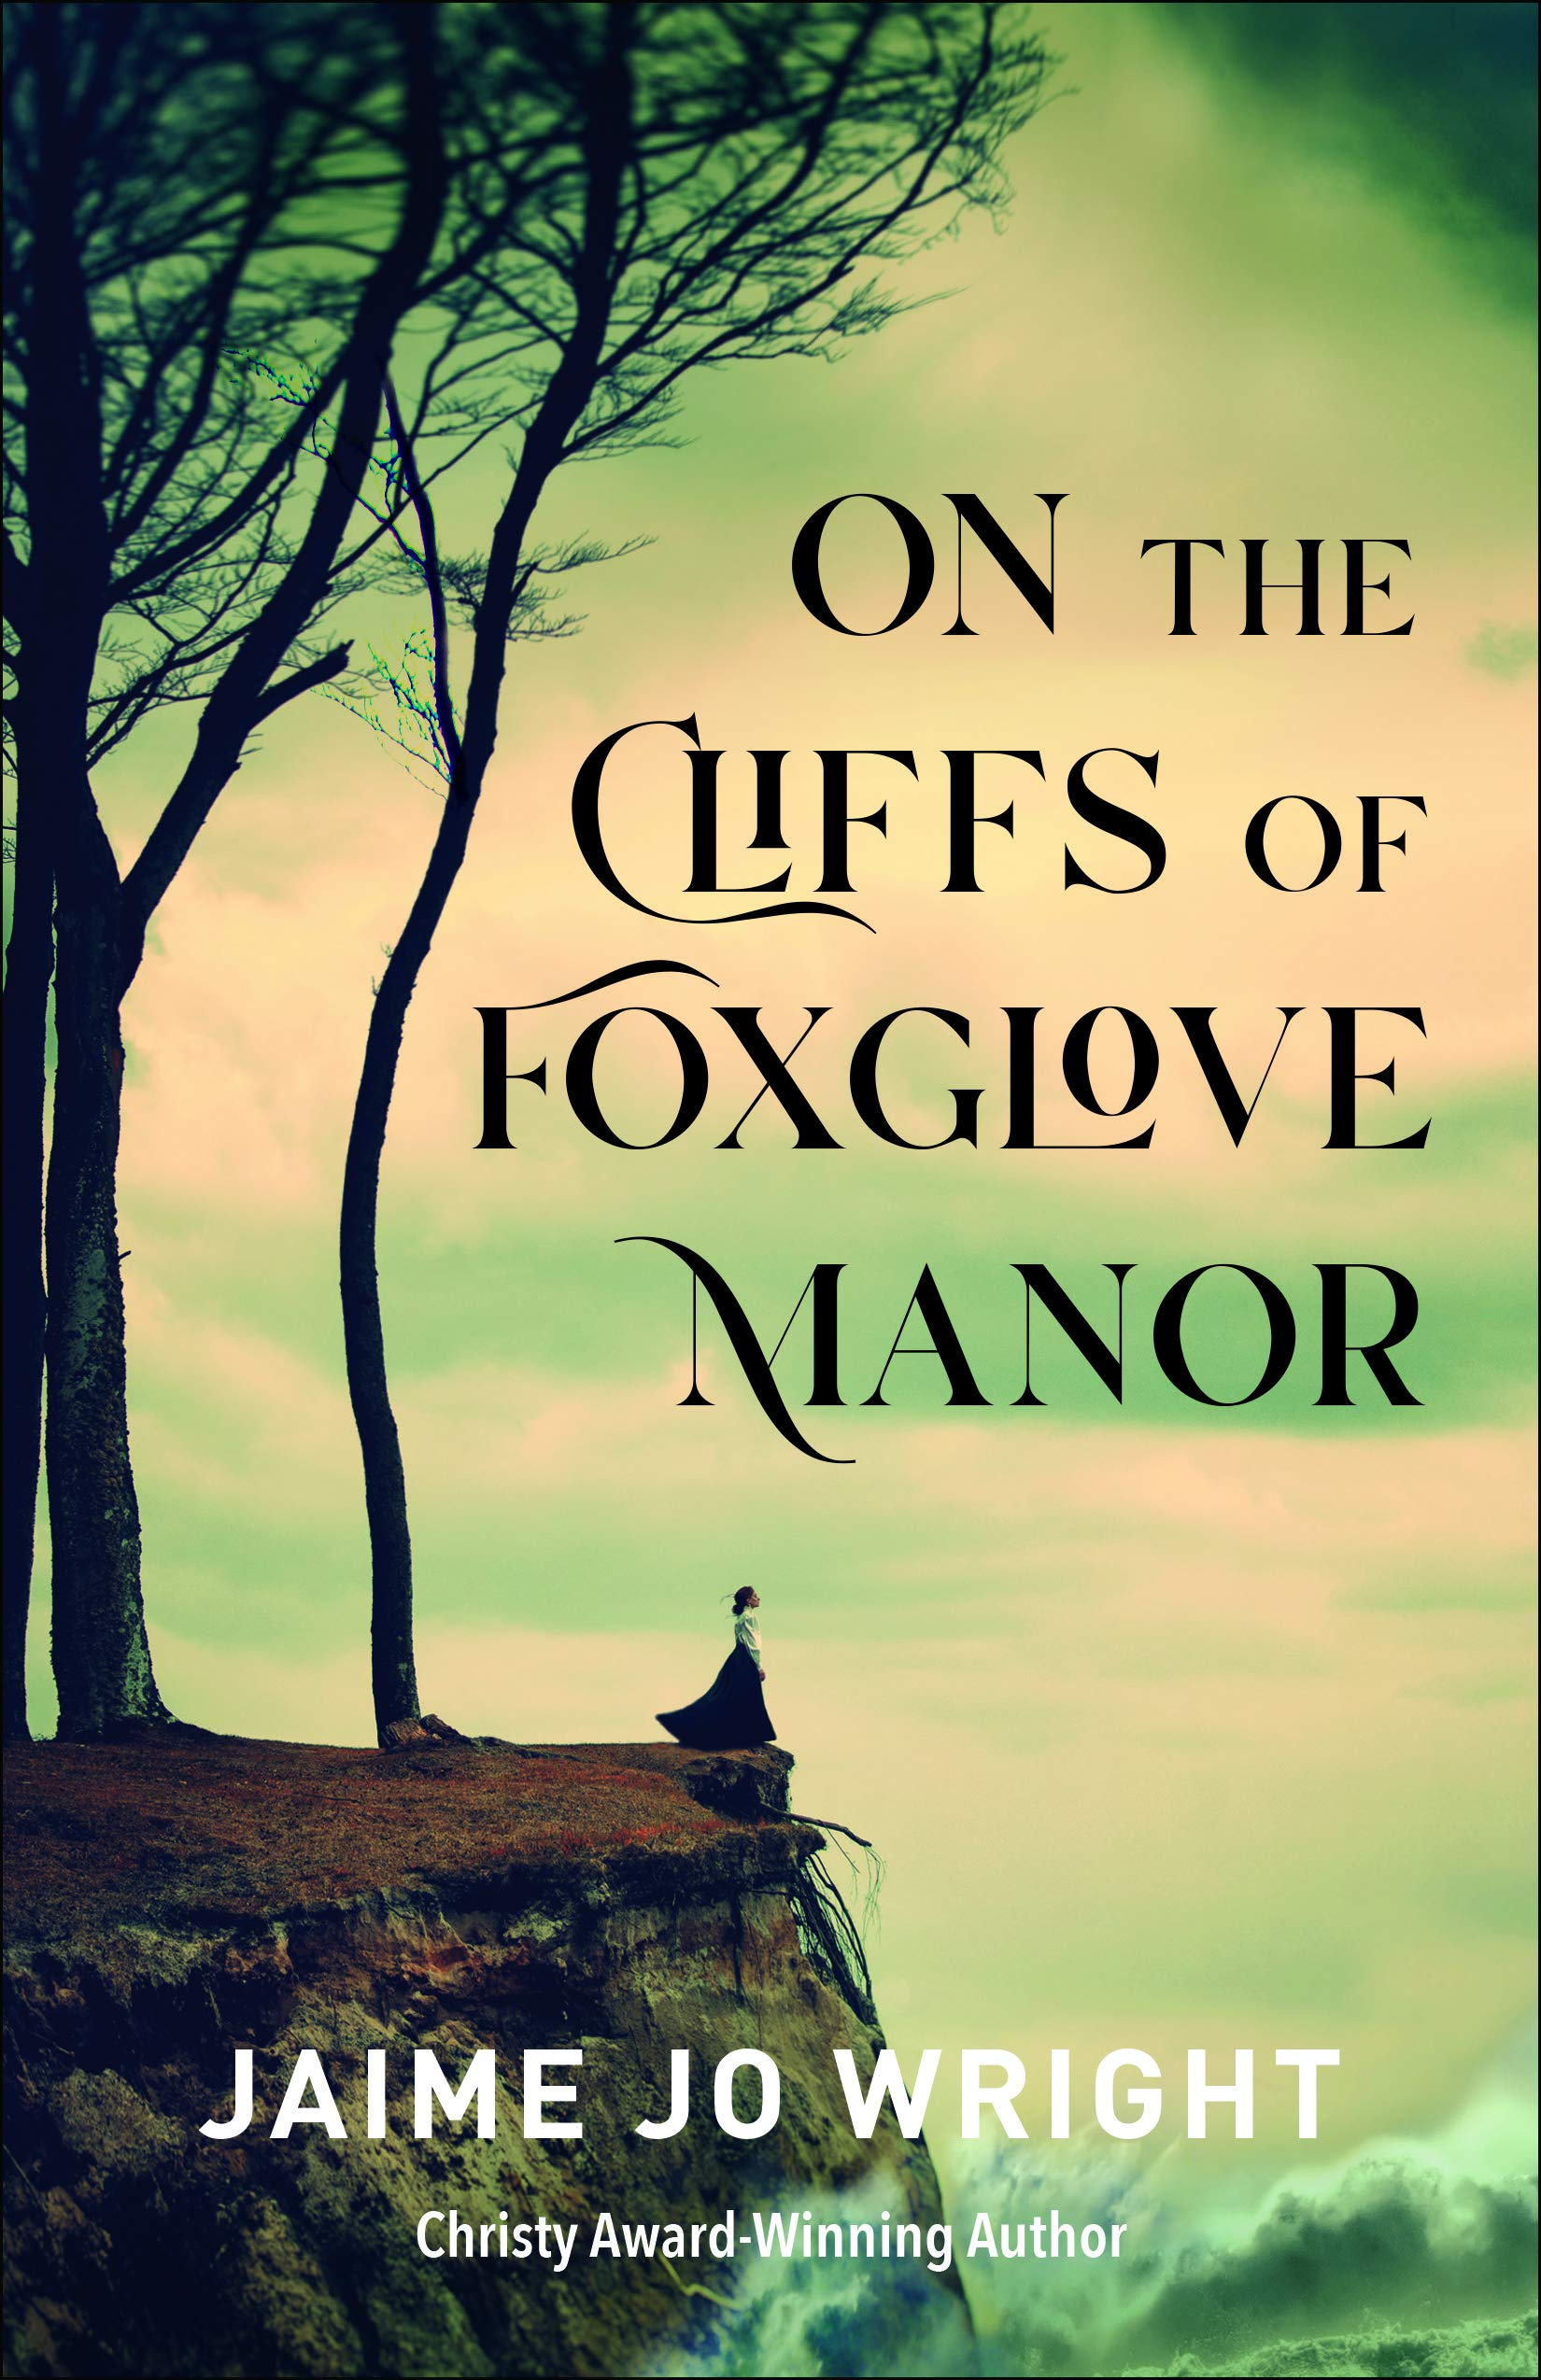 On the Cliffs of Foxglove Manor